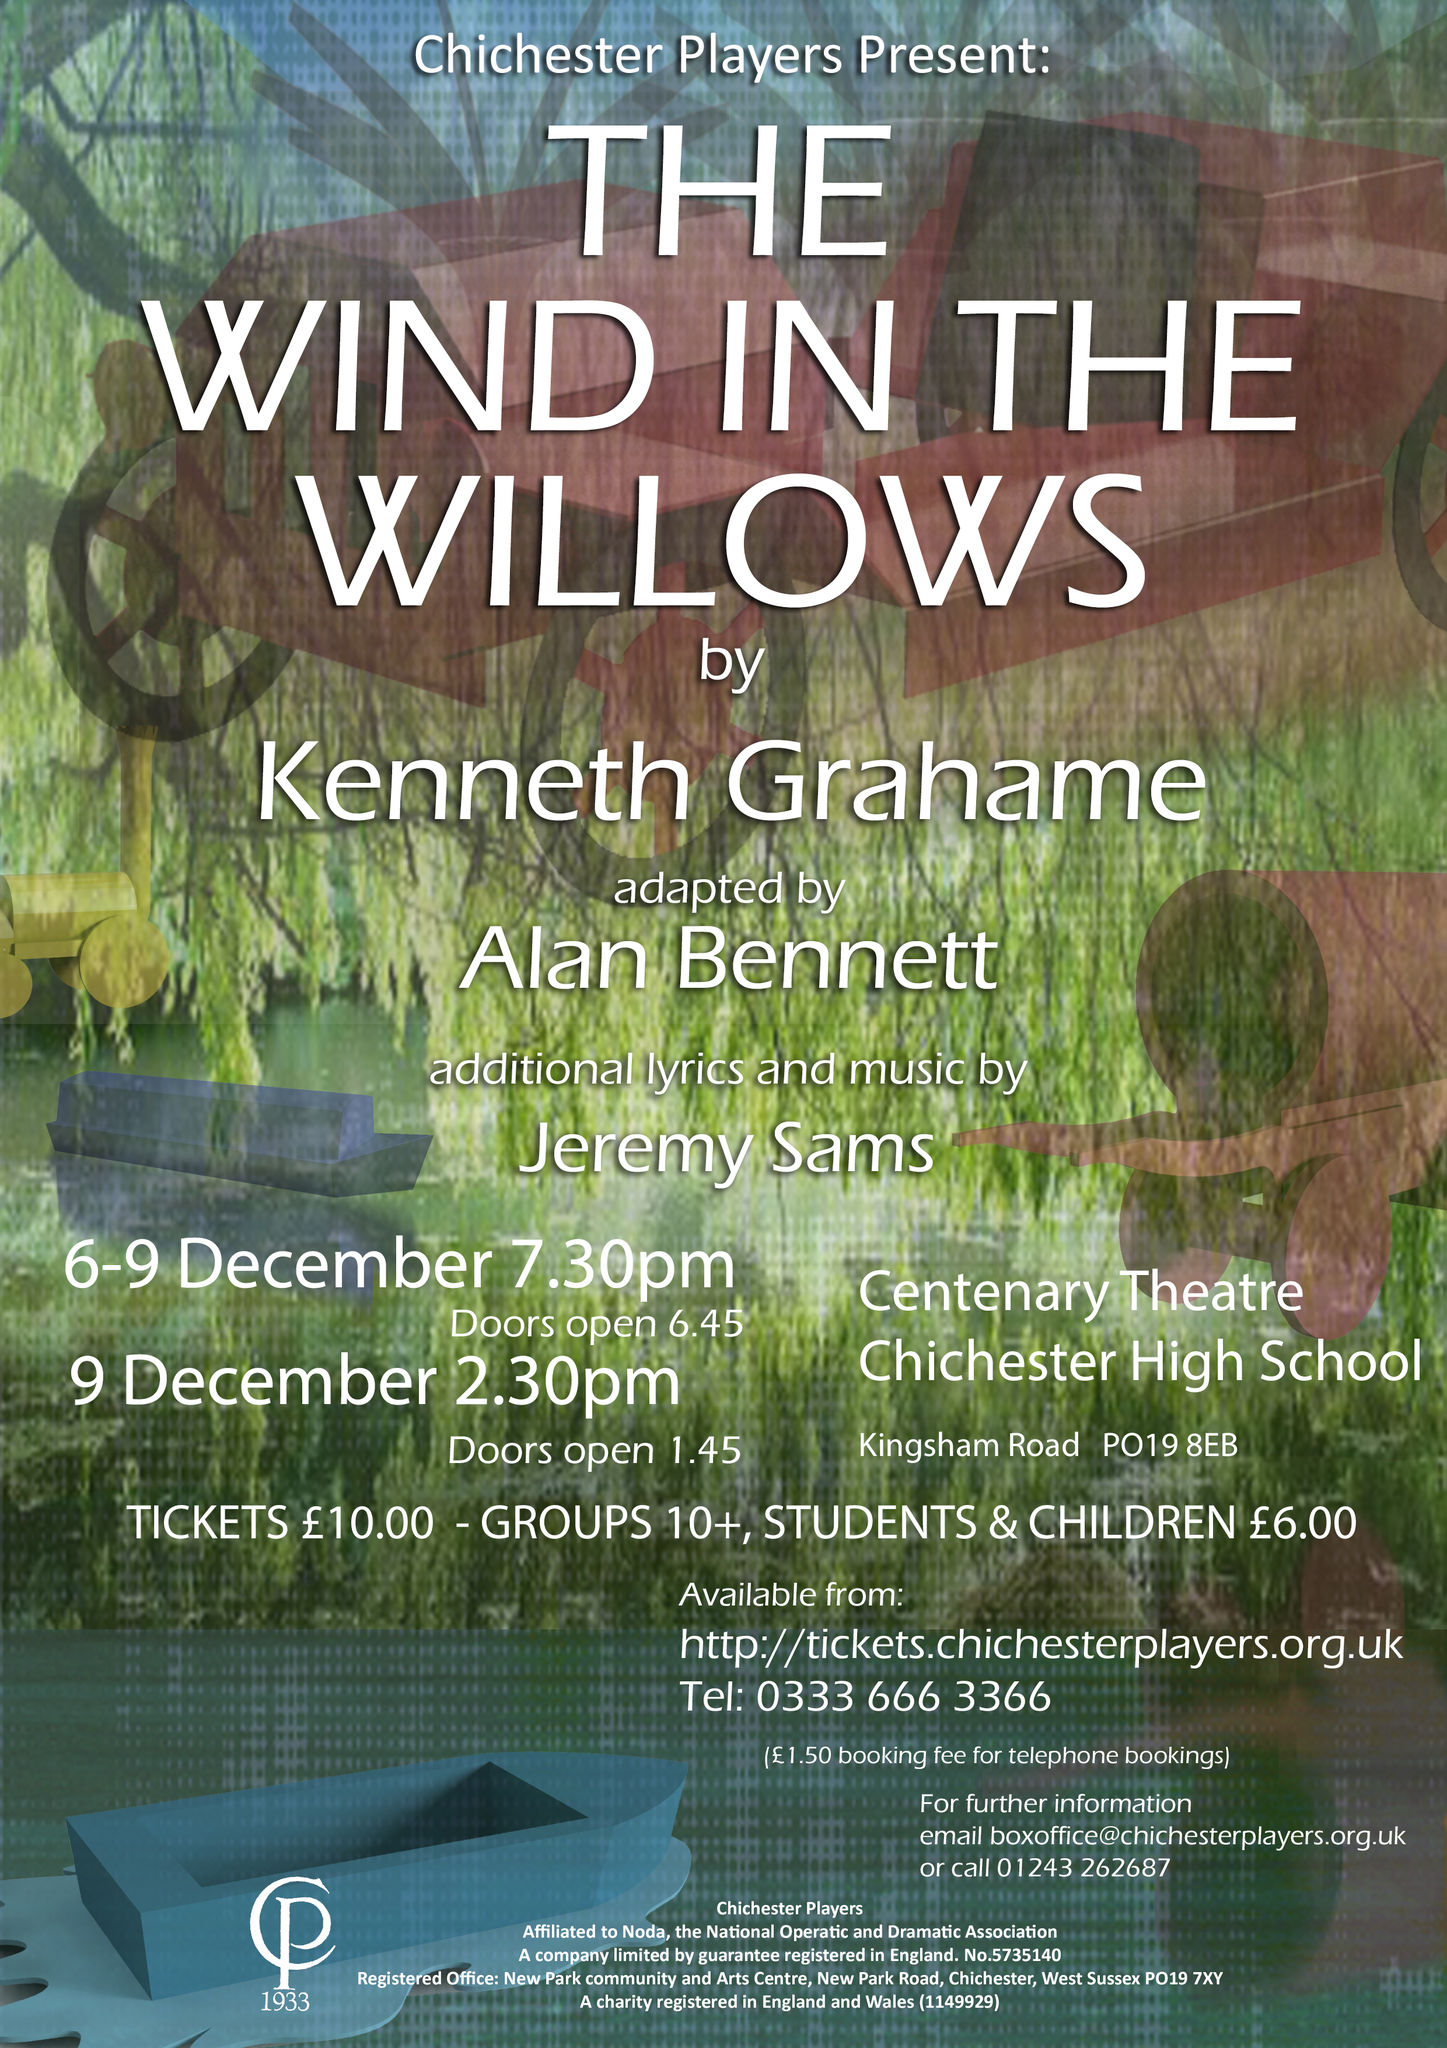 Wind in the willows poster a4 2